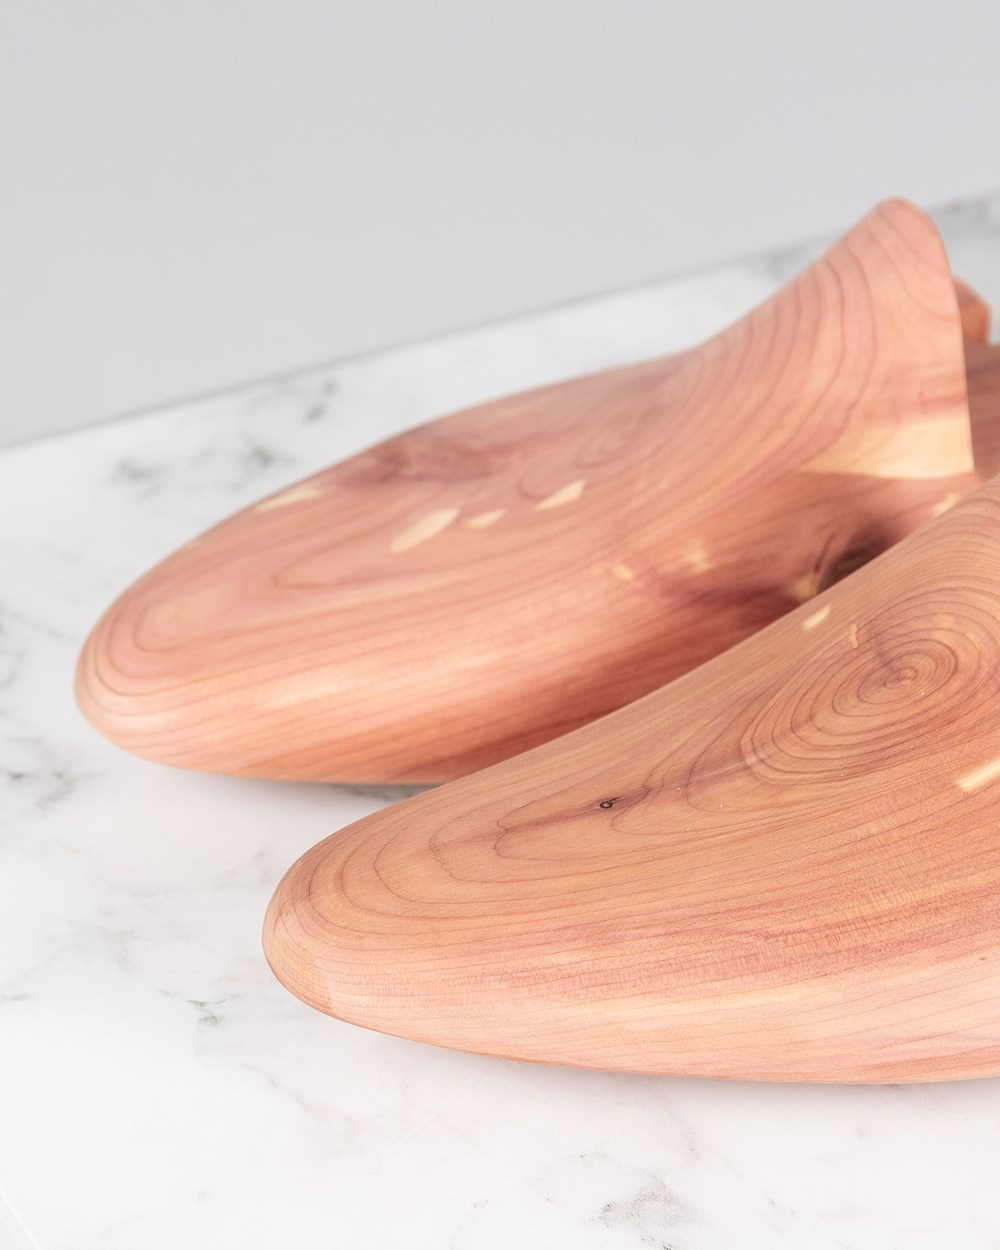 Cavour Cedar Shoe Tree